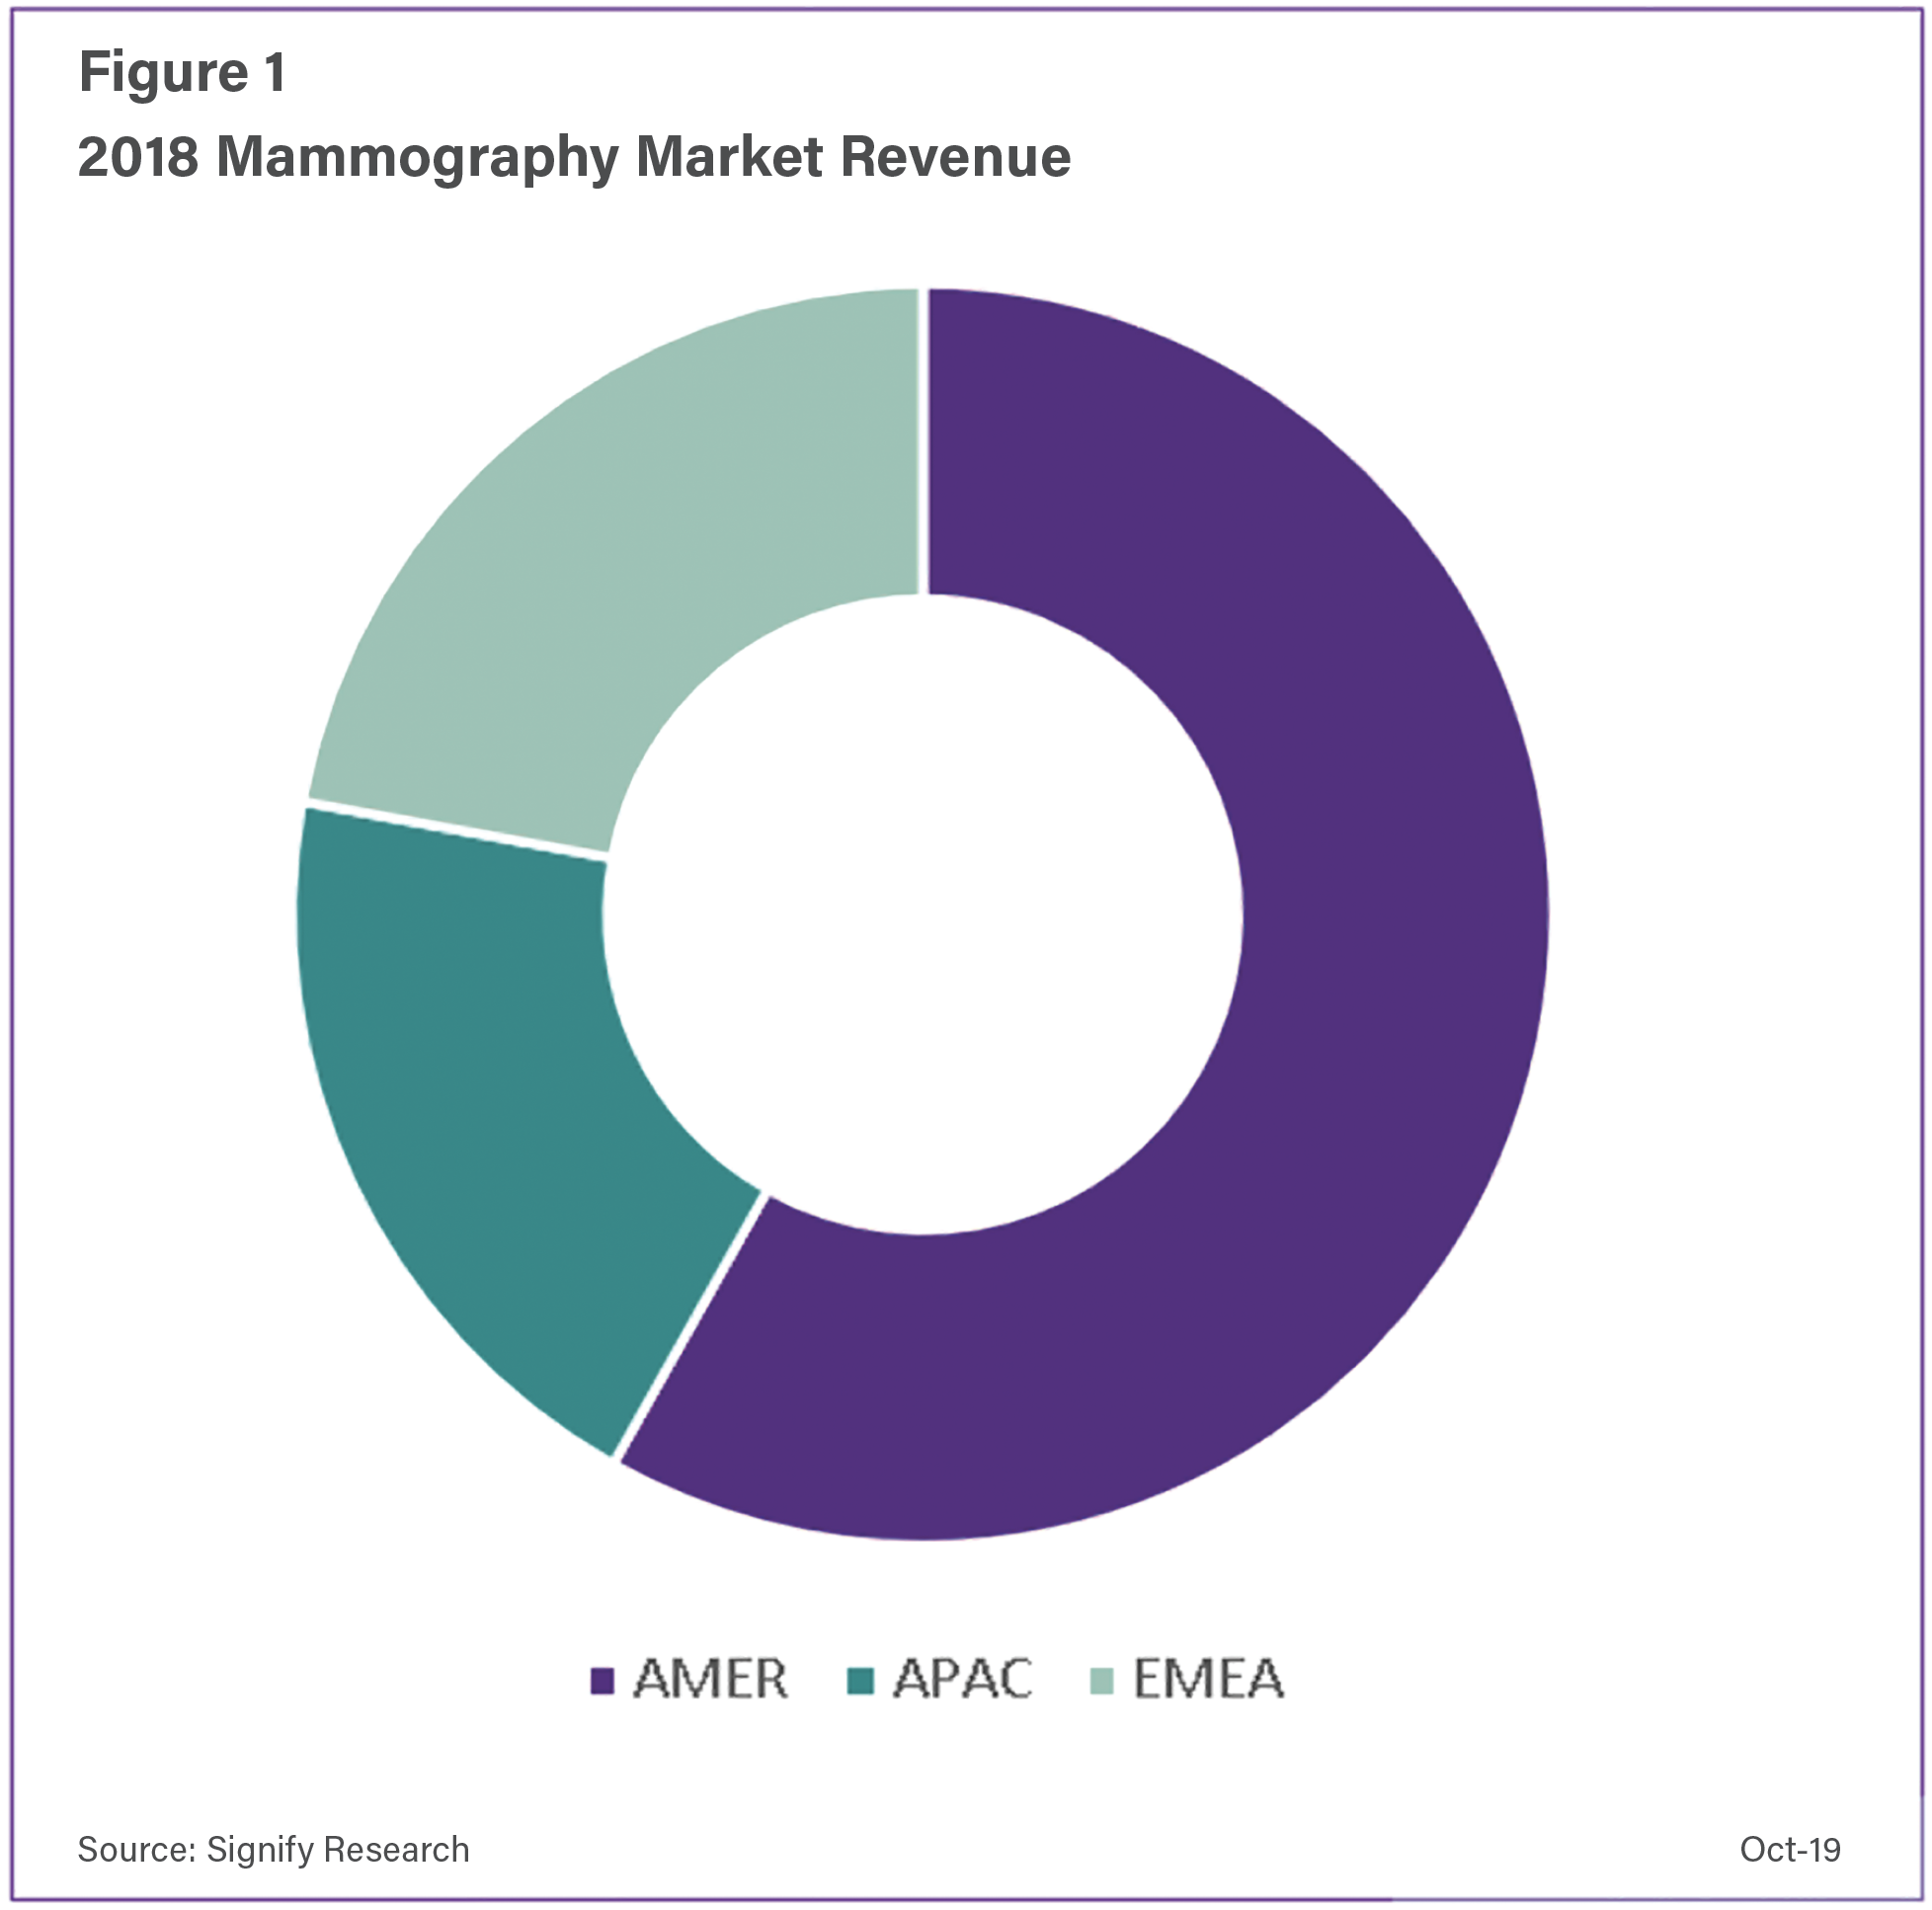 The U.S. market is unique in that it formed over 55 percent of the global market in 2018